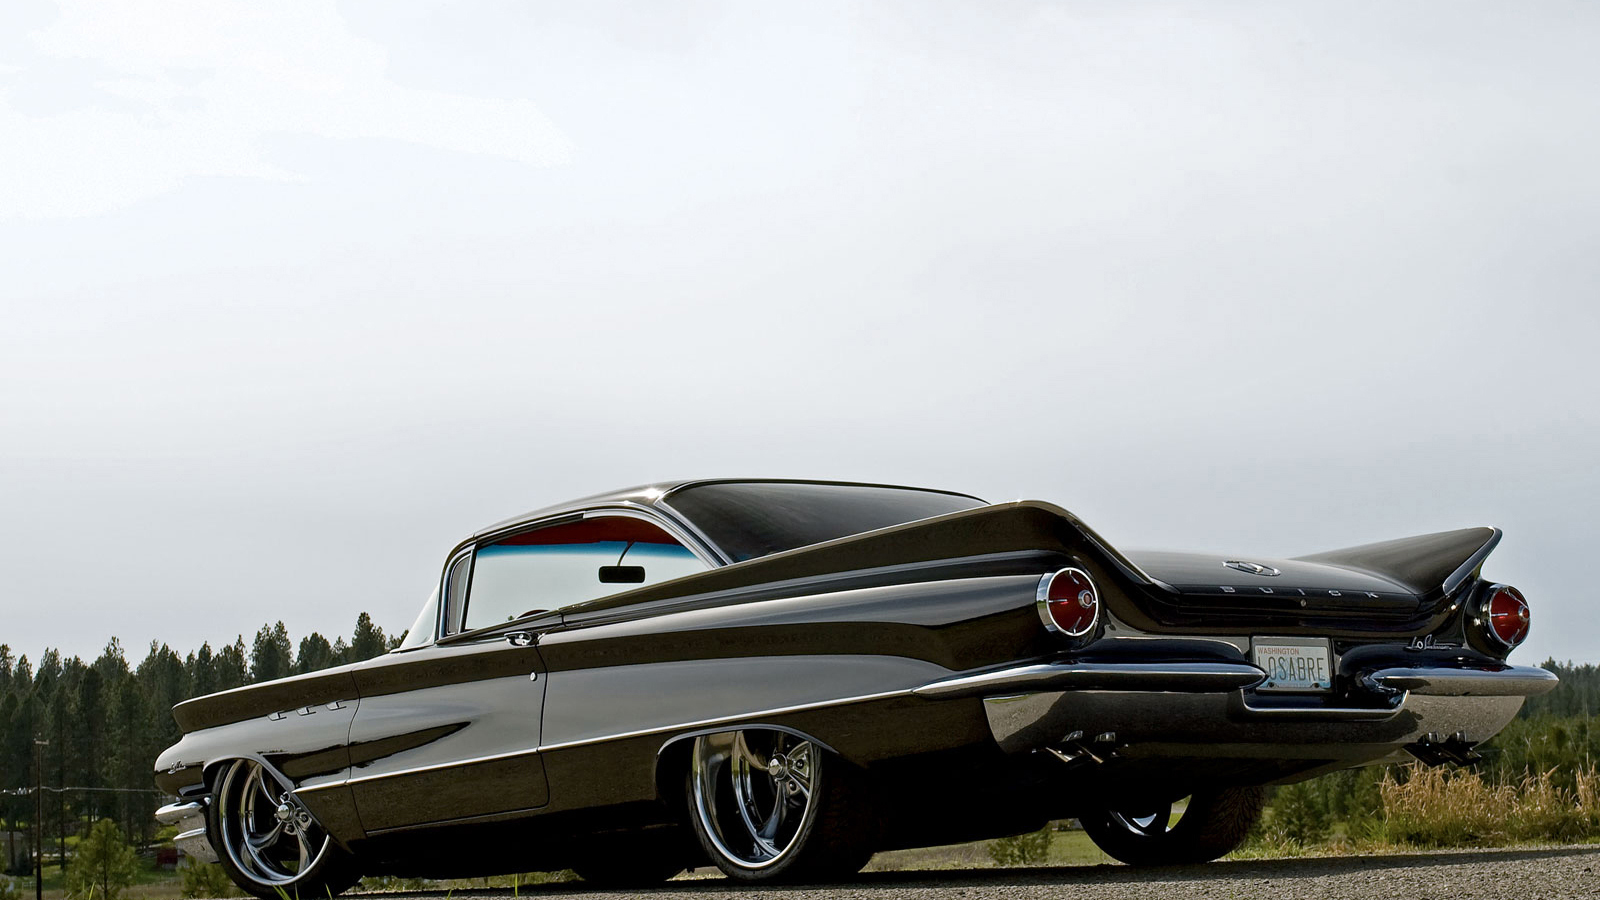 Http Www Streetrodderweb Com Features 1011sr 1960 Buick Lesabre Viewall Html Wallpaper And